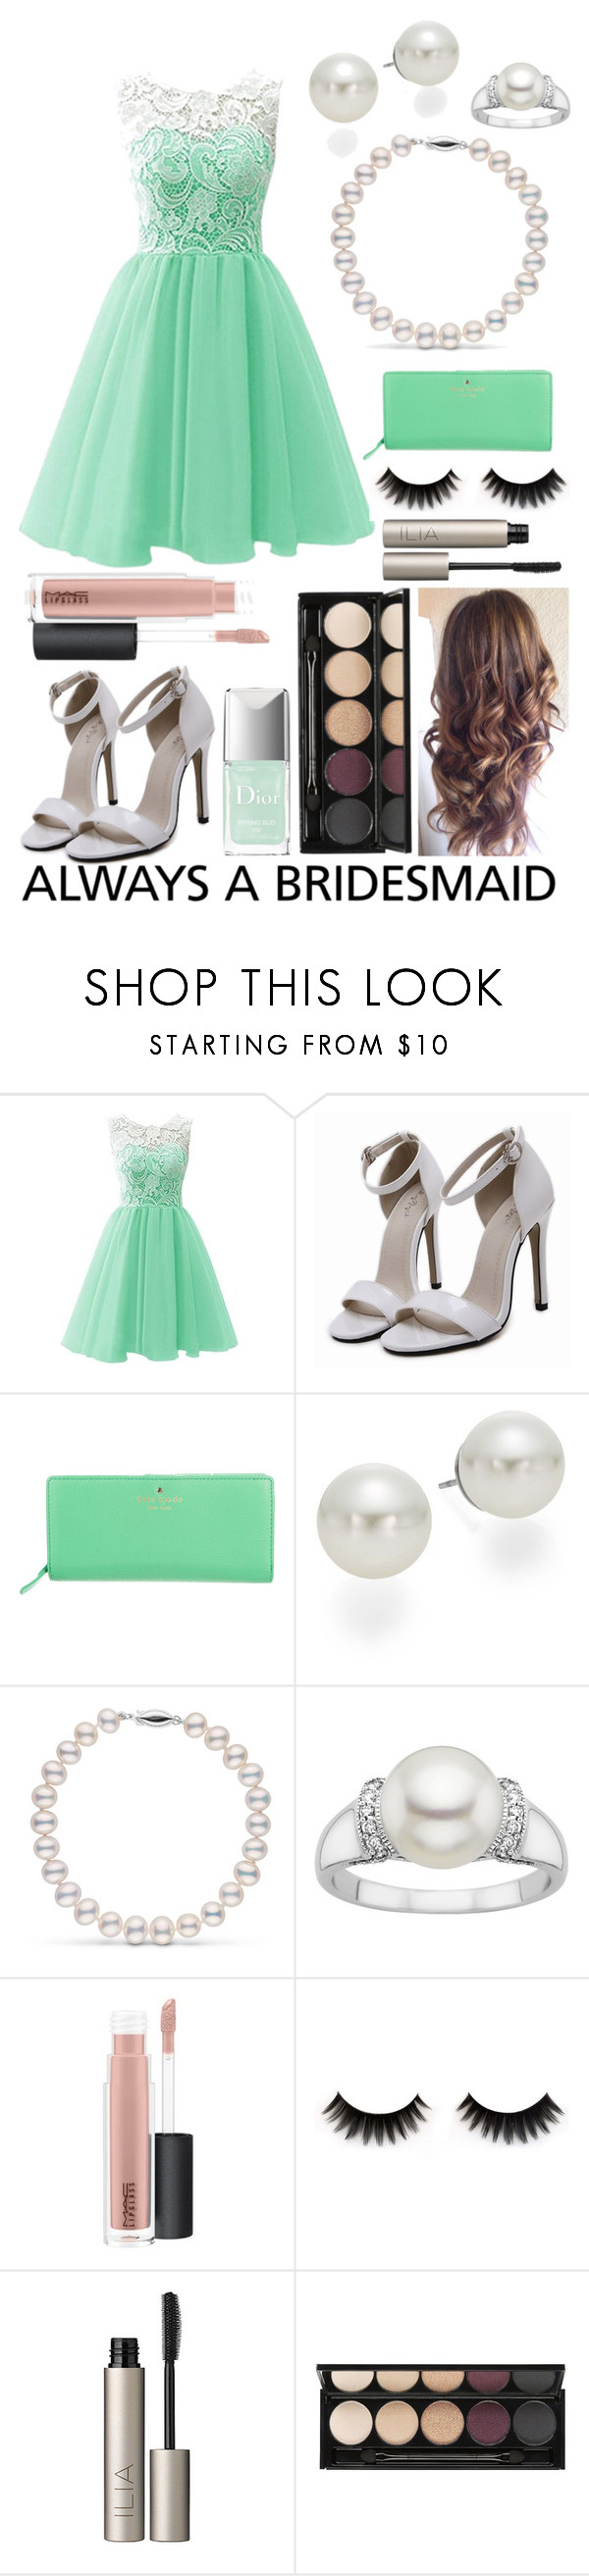 """always a bridesmaid"" by doggyrules on Polyvore featuring Kate Spade, AK Anne Klein, MAC Cosmetics, Ilia and Witchery"